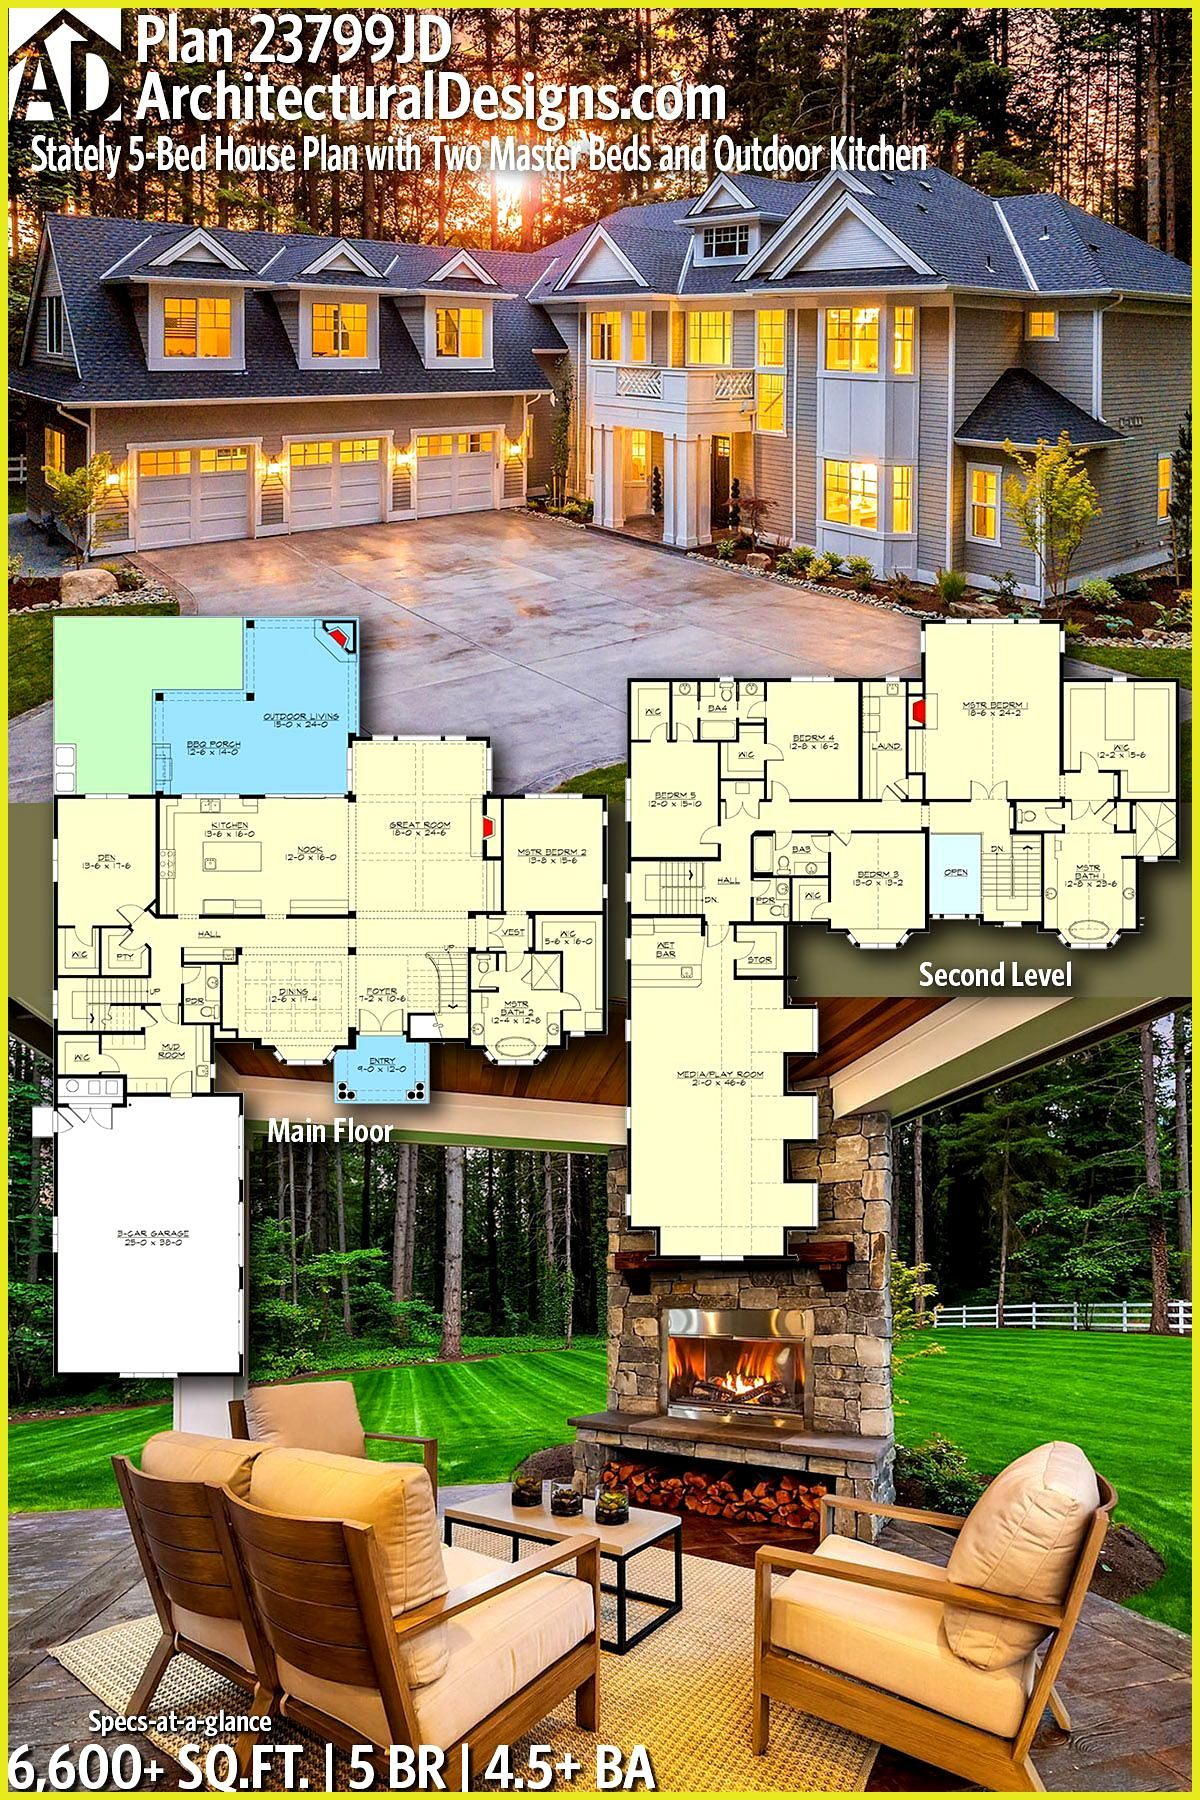 Plan 23799jd Stately 5 Bed House Plan With Two Master Beds And Outdoor Kitchen Architectural Designs Home Plan House Plans Luxury House Plans Dream House Plans